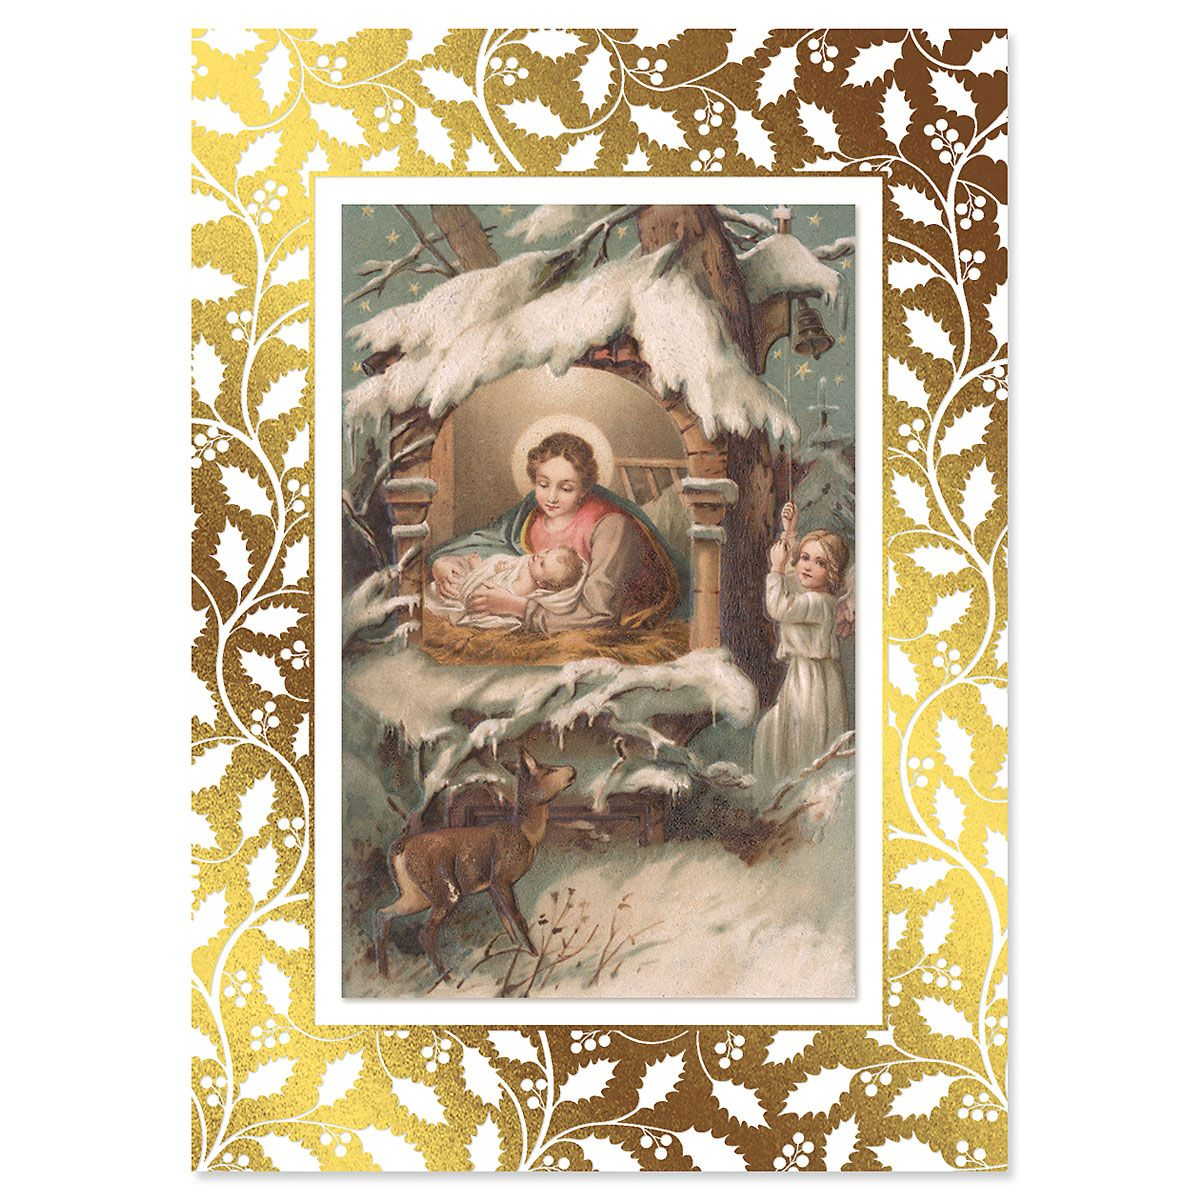 Vintage Nativity Religious Deluxe Foil Christmas Cards